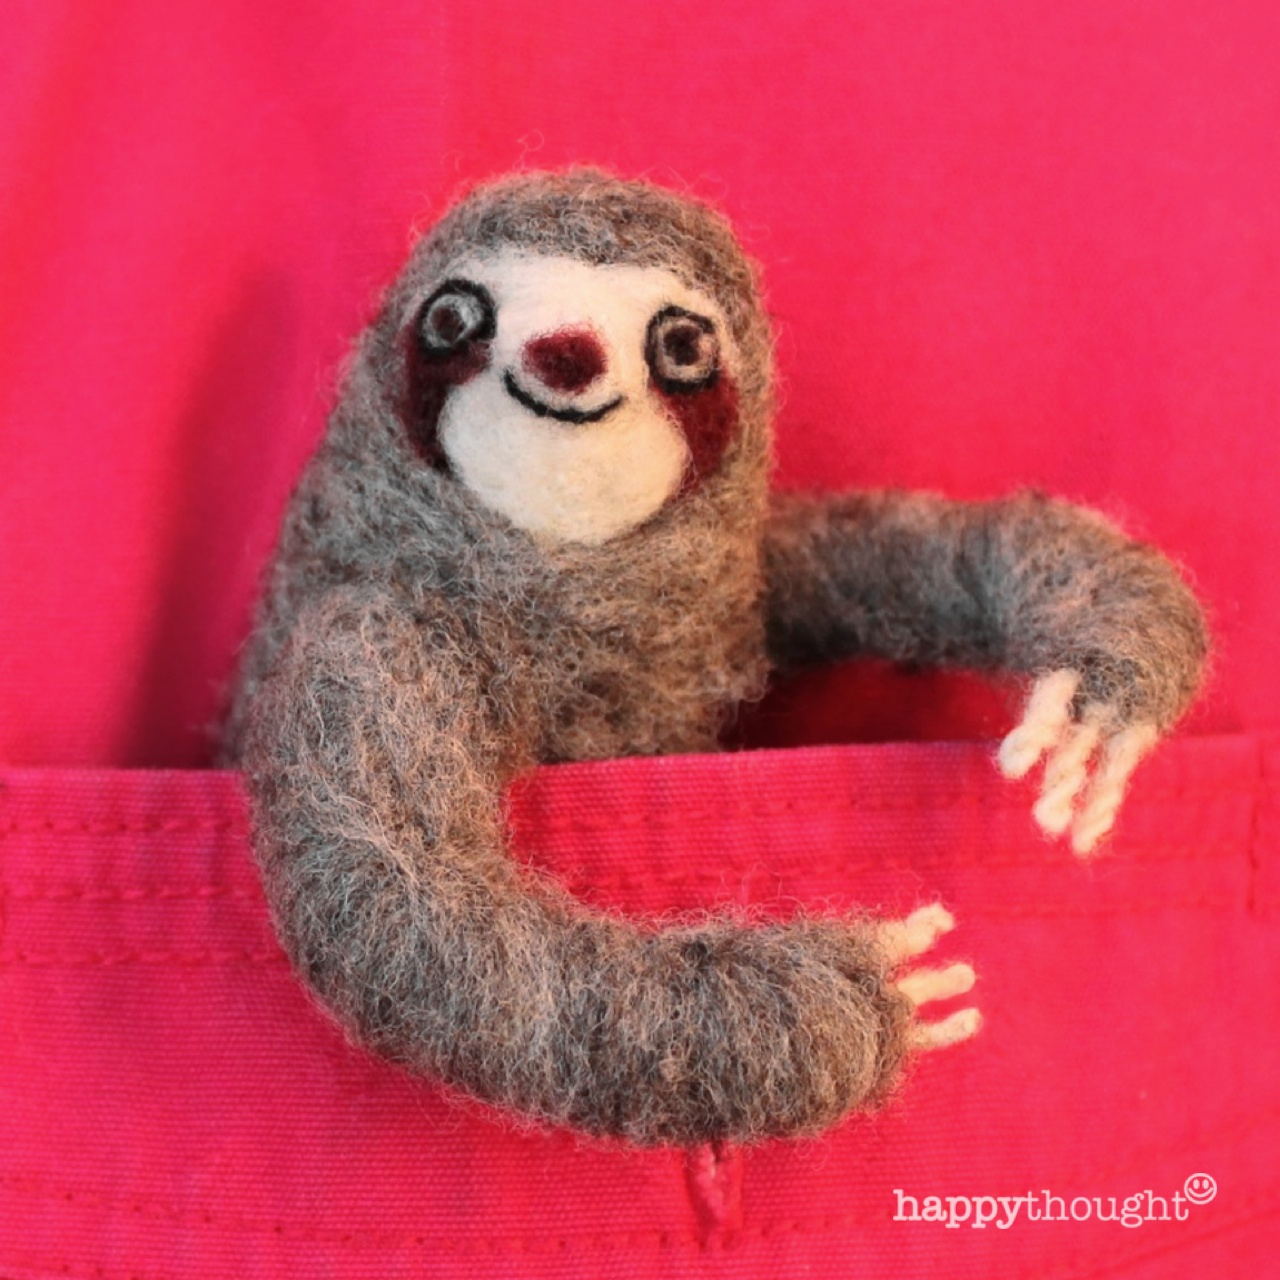 Make this sloth craft needle felt with Happythought DIY step-by-step instructions